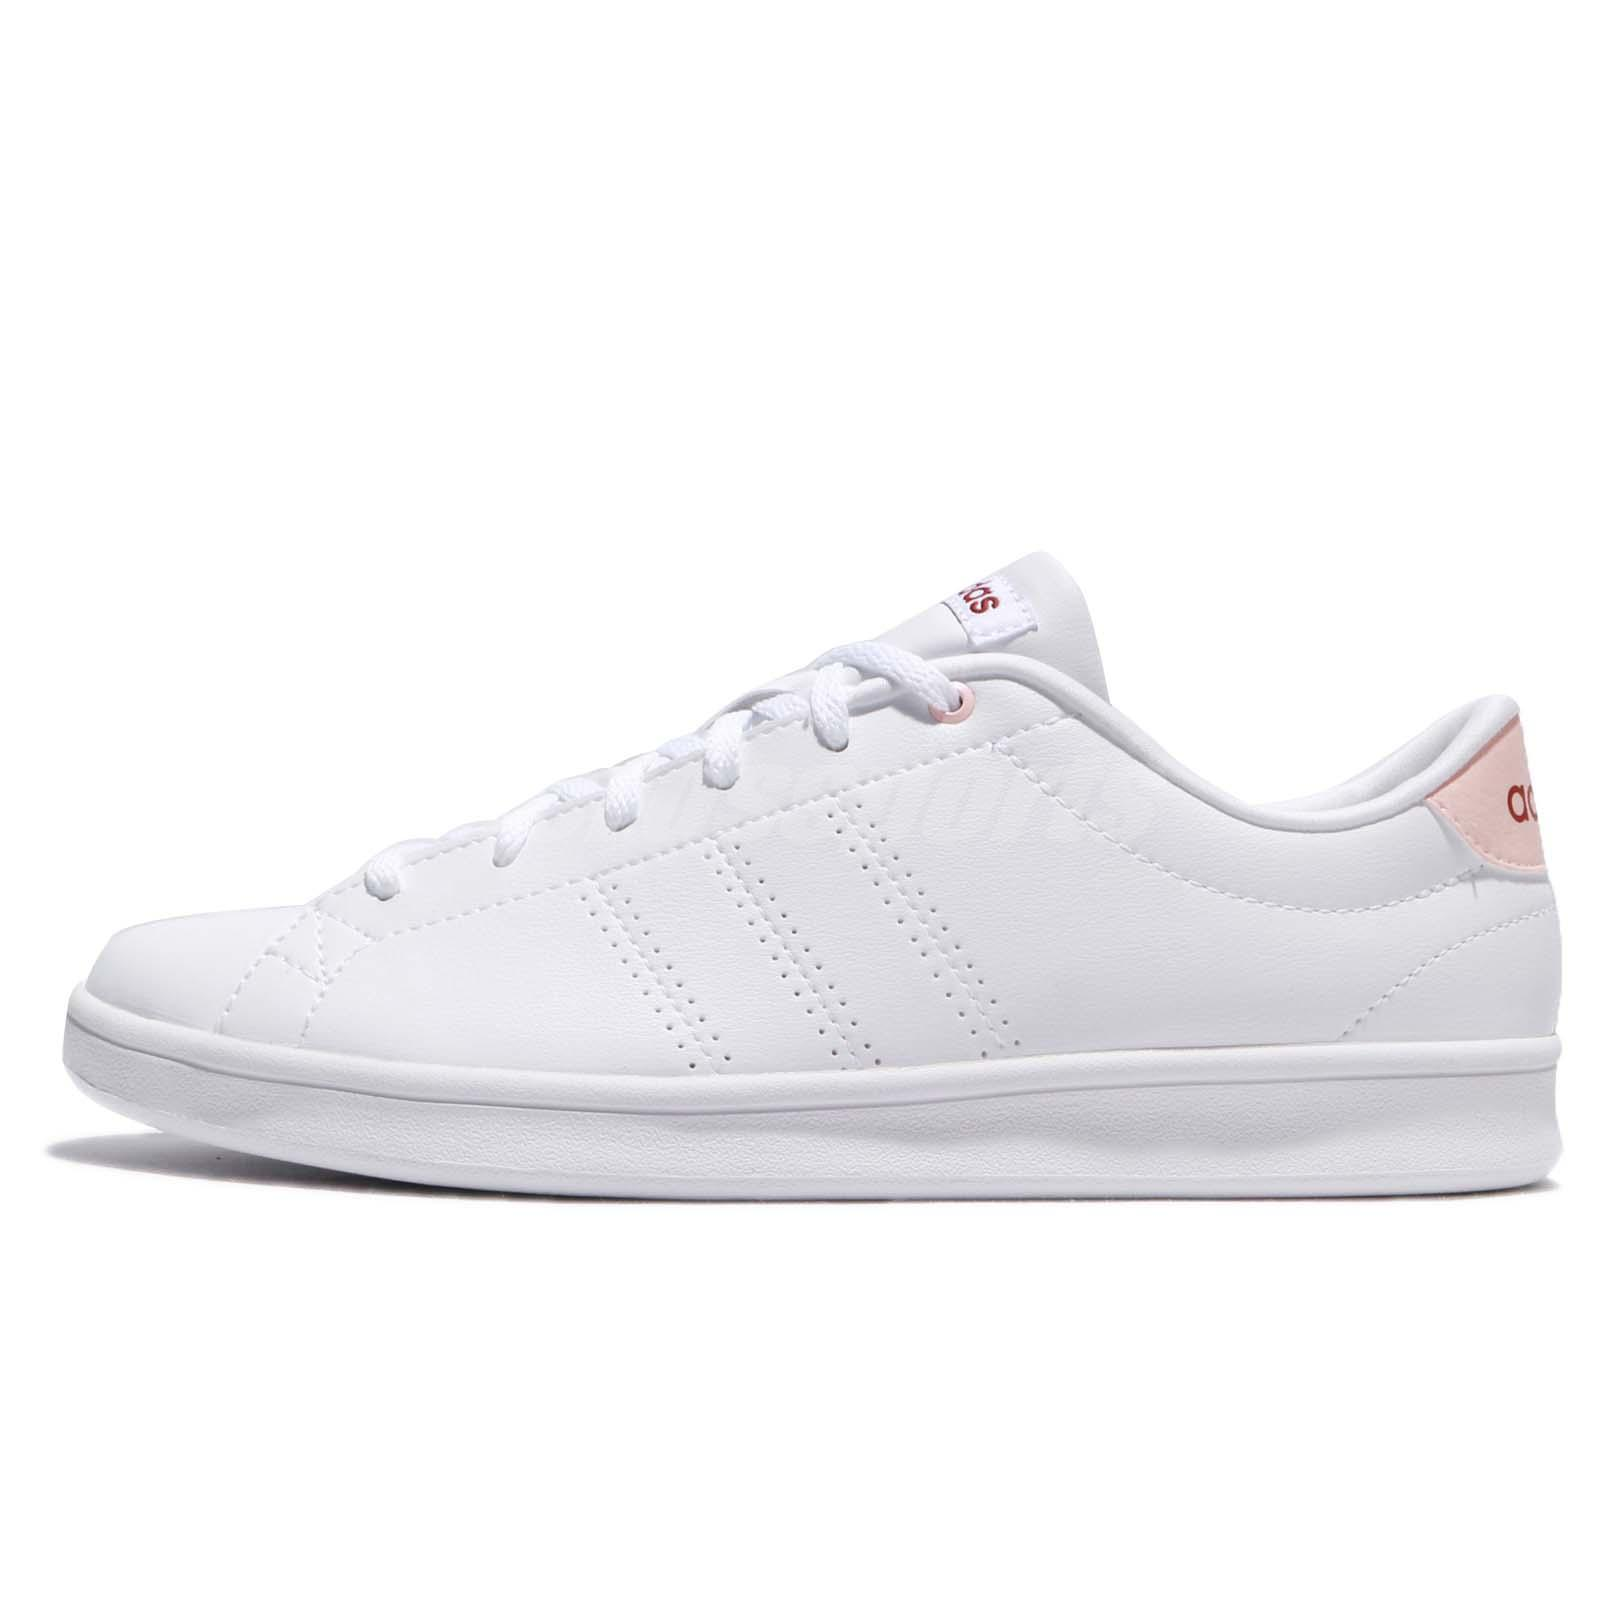 buy online 92094 109b6 adidas Neo Advantage CL Clean QT W White Mystery Ruby Pink Women Shoes  BB9611